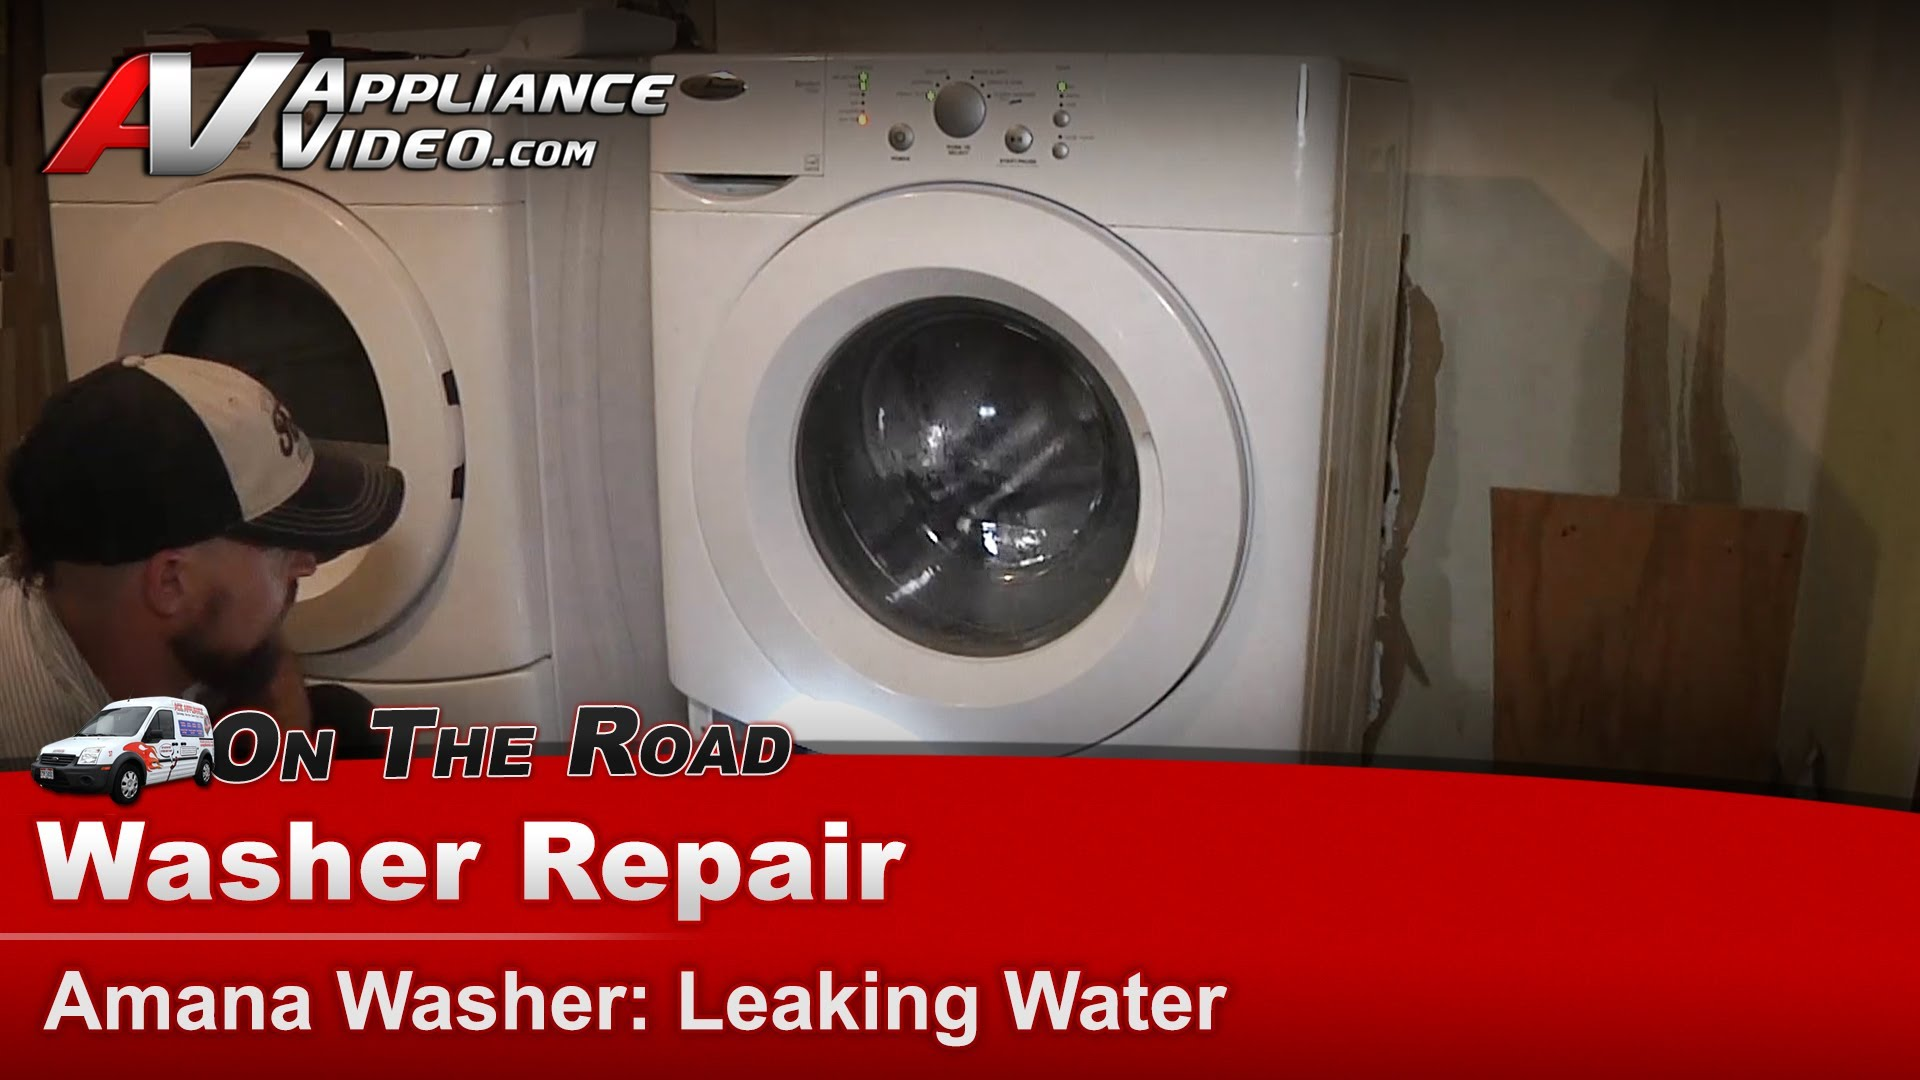 Amana NFW7300WW Washer Repair – Leaking water – Bellow | Appliance Video